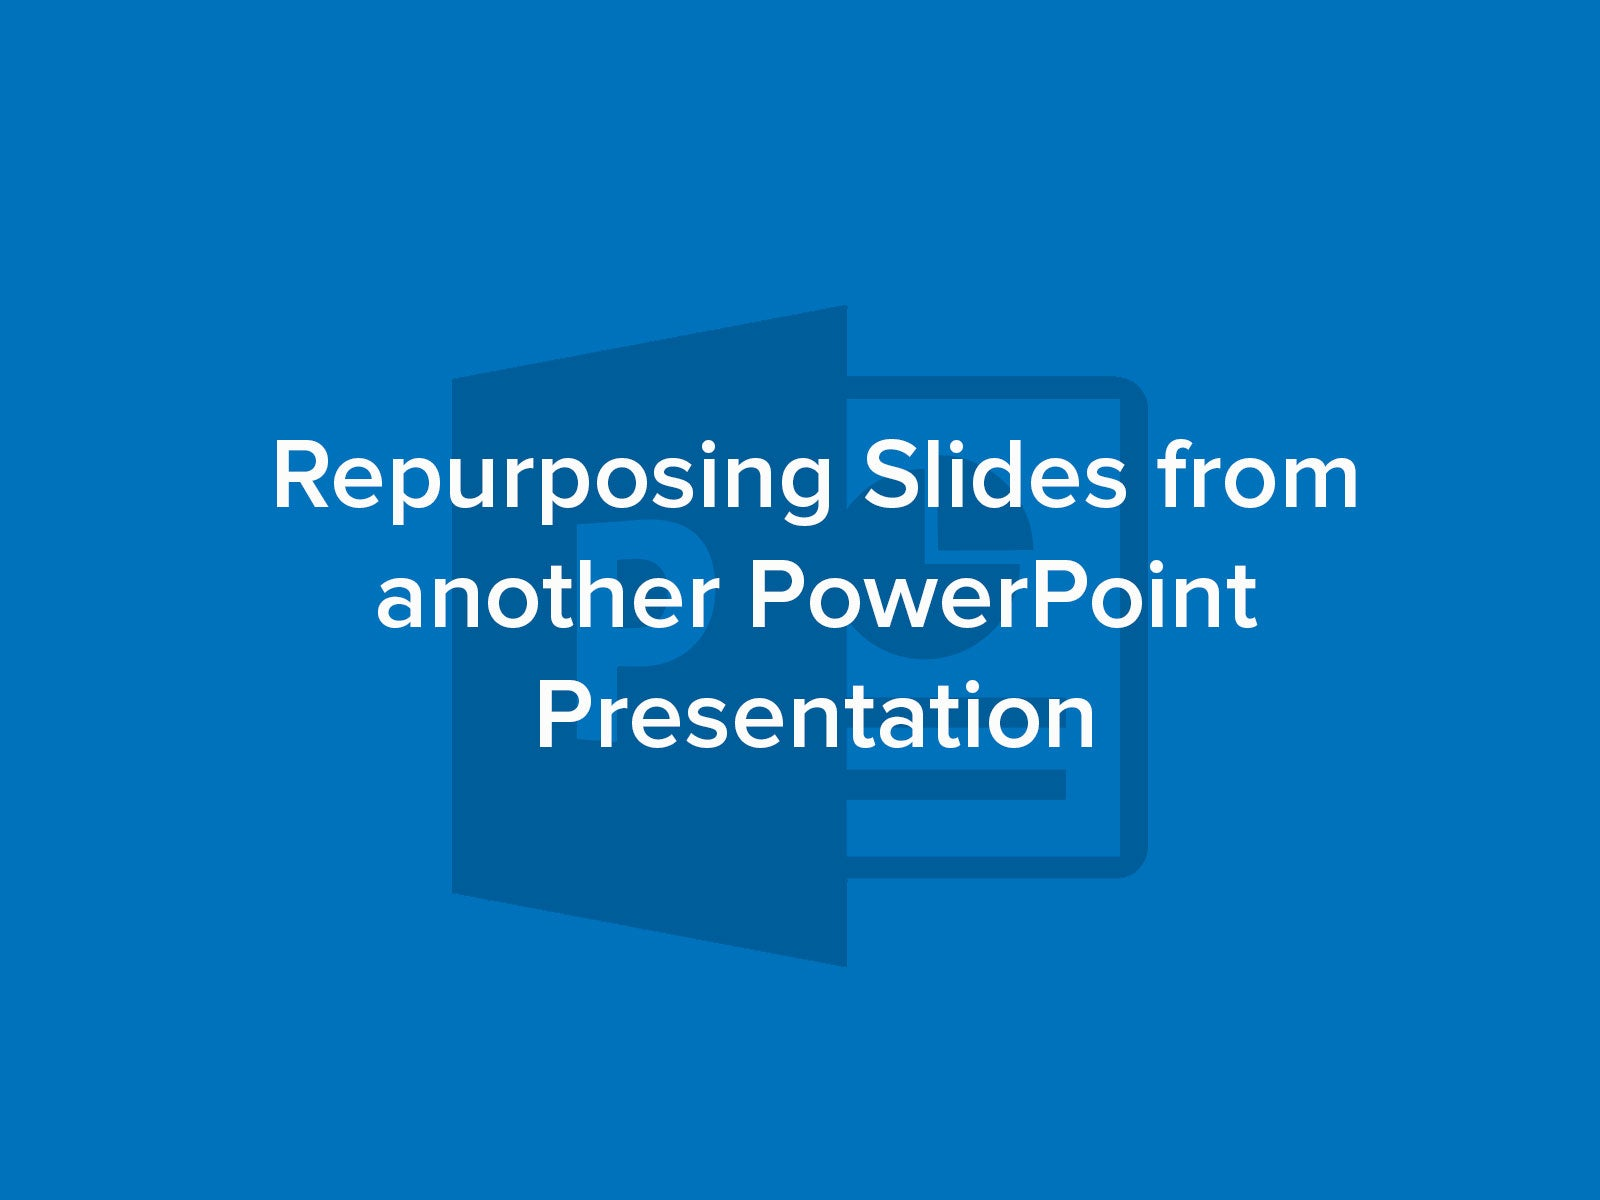 How to Repurpose PPT slides from other Presentations